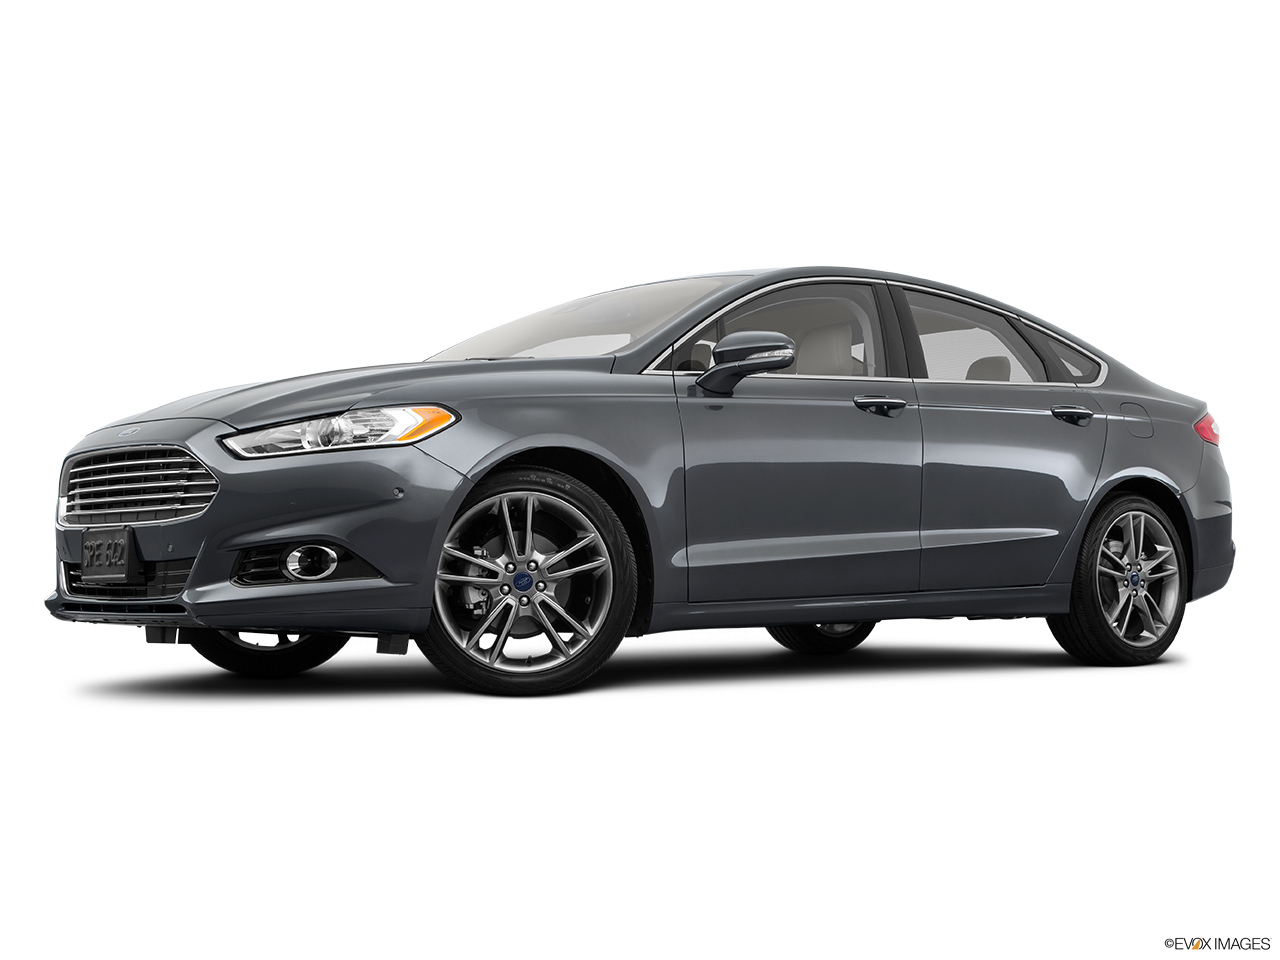 Ford Fusion St >> 2015 Ford Fusion 4dr Sedan Titanium FWD - Low/wide front 5/8